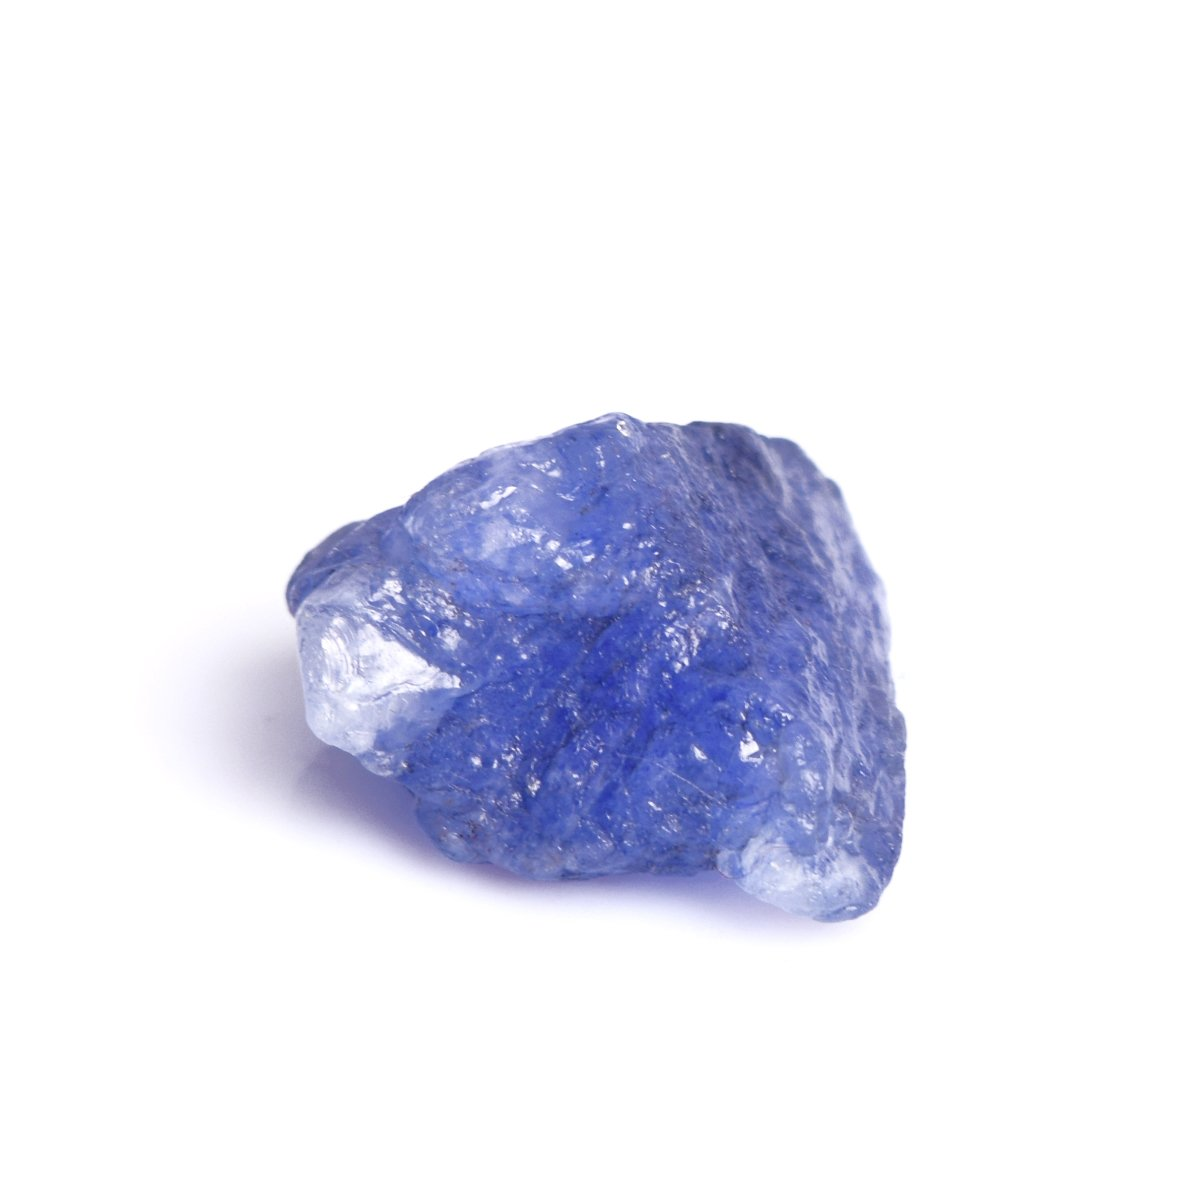 Certified Natural Unheated Blue Sapphire Loose Gemstone 20.90 Ct. AAA+ Quality Rough Sapphire DP-599 hamlet e commerce